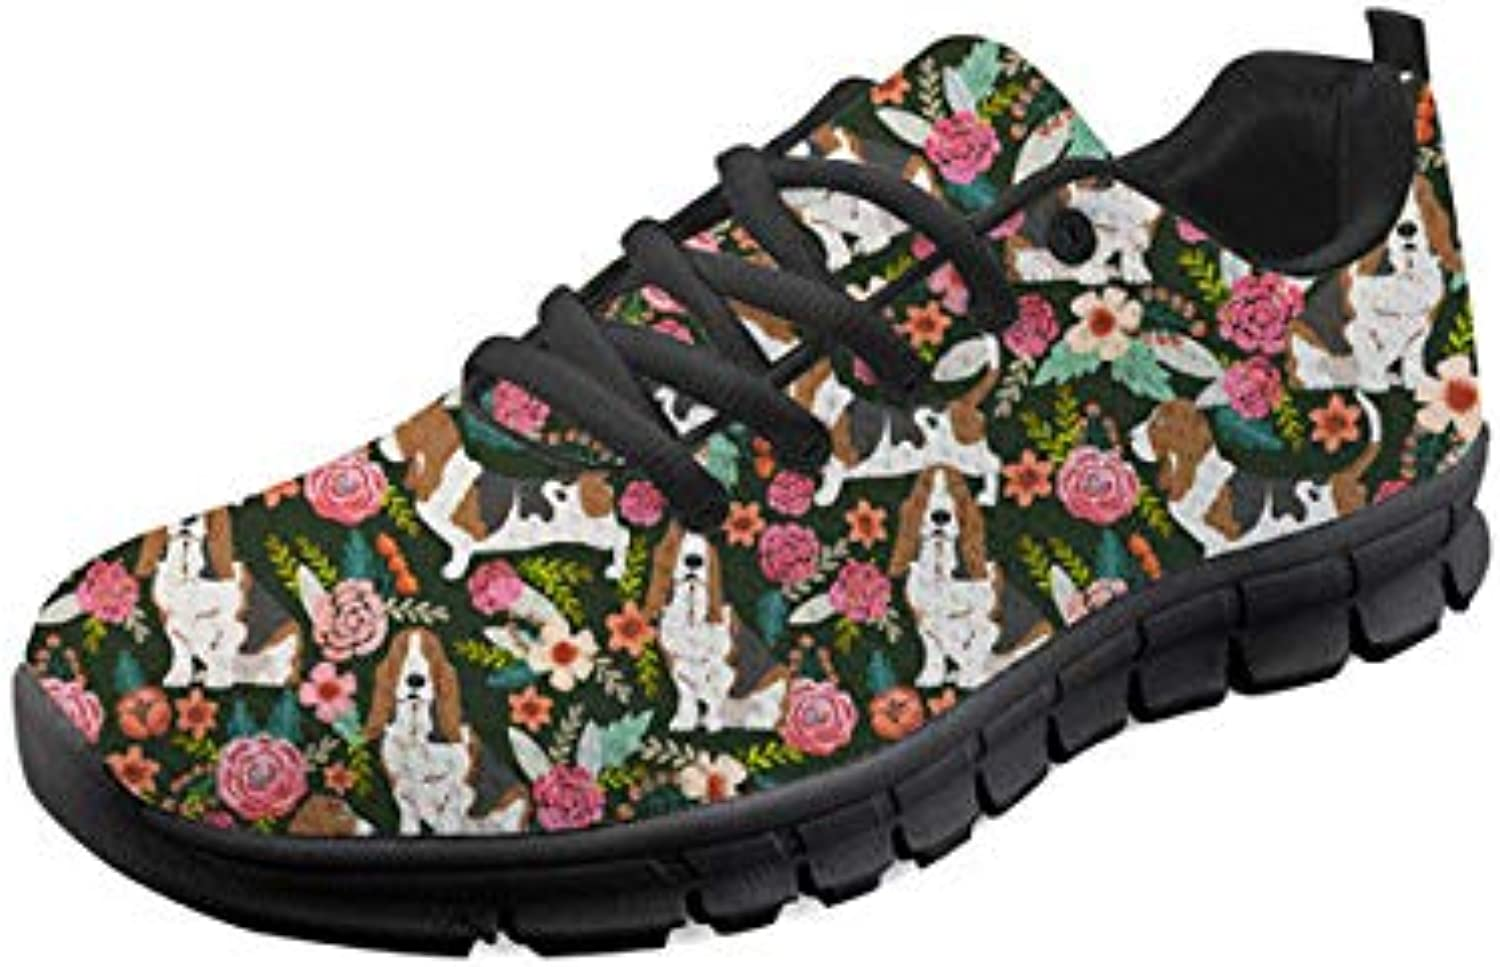 WHEREISART Comfortable Outdoor Sneakers Women Running Sport shoes Cute Pattern Size 5-11